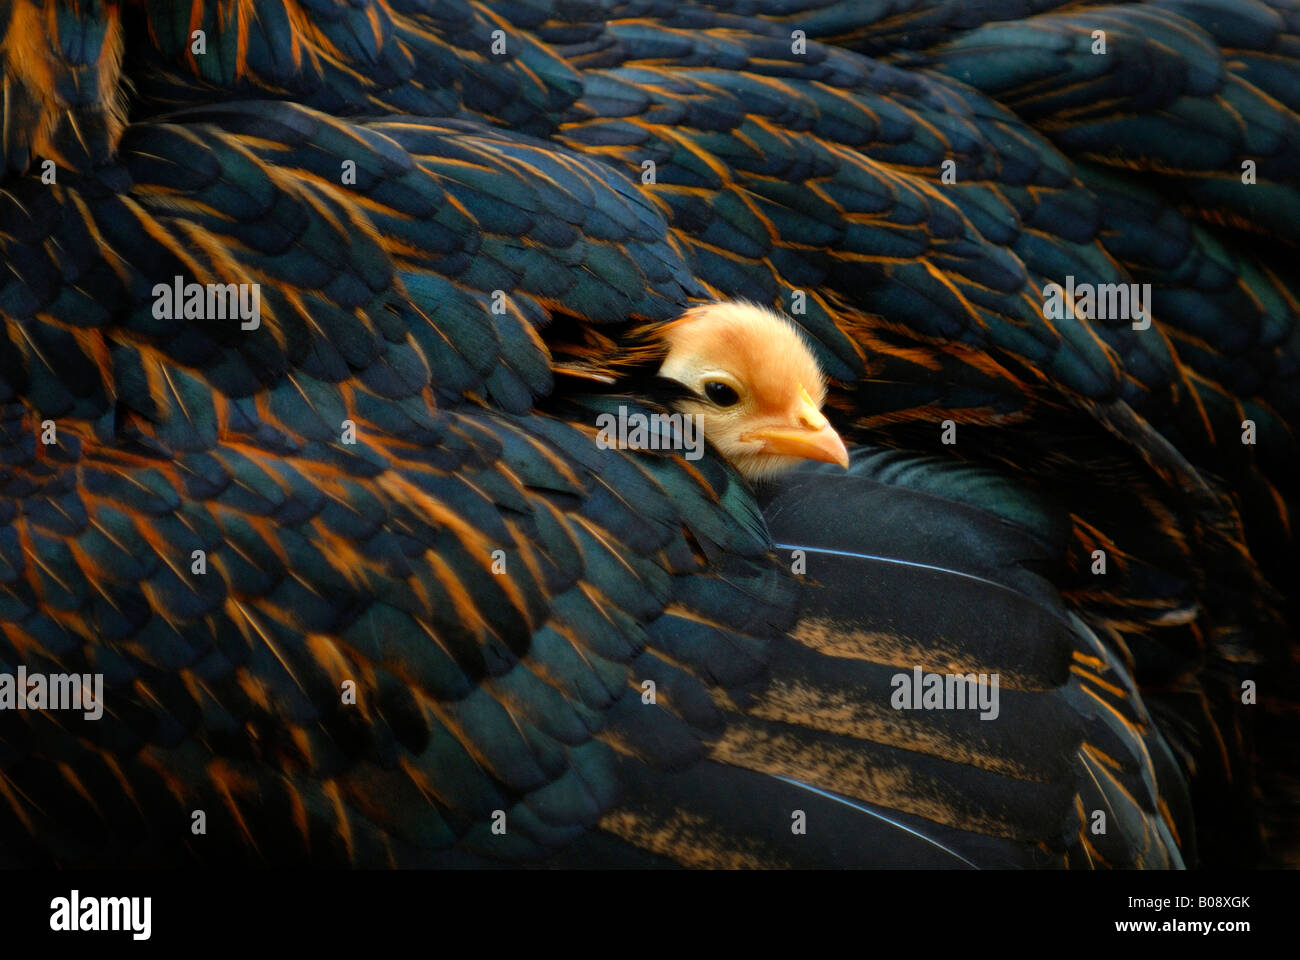 Chick peaking out from its mother's feathers Stock Photo